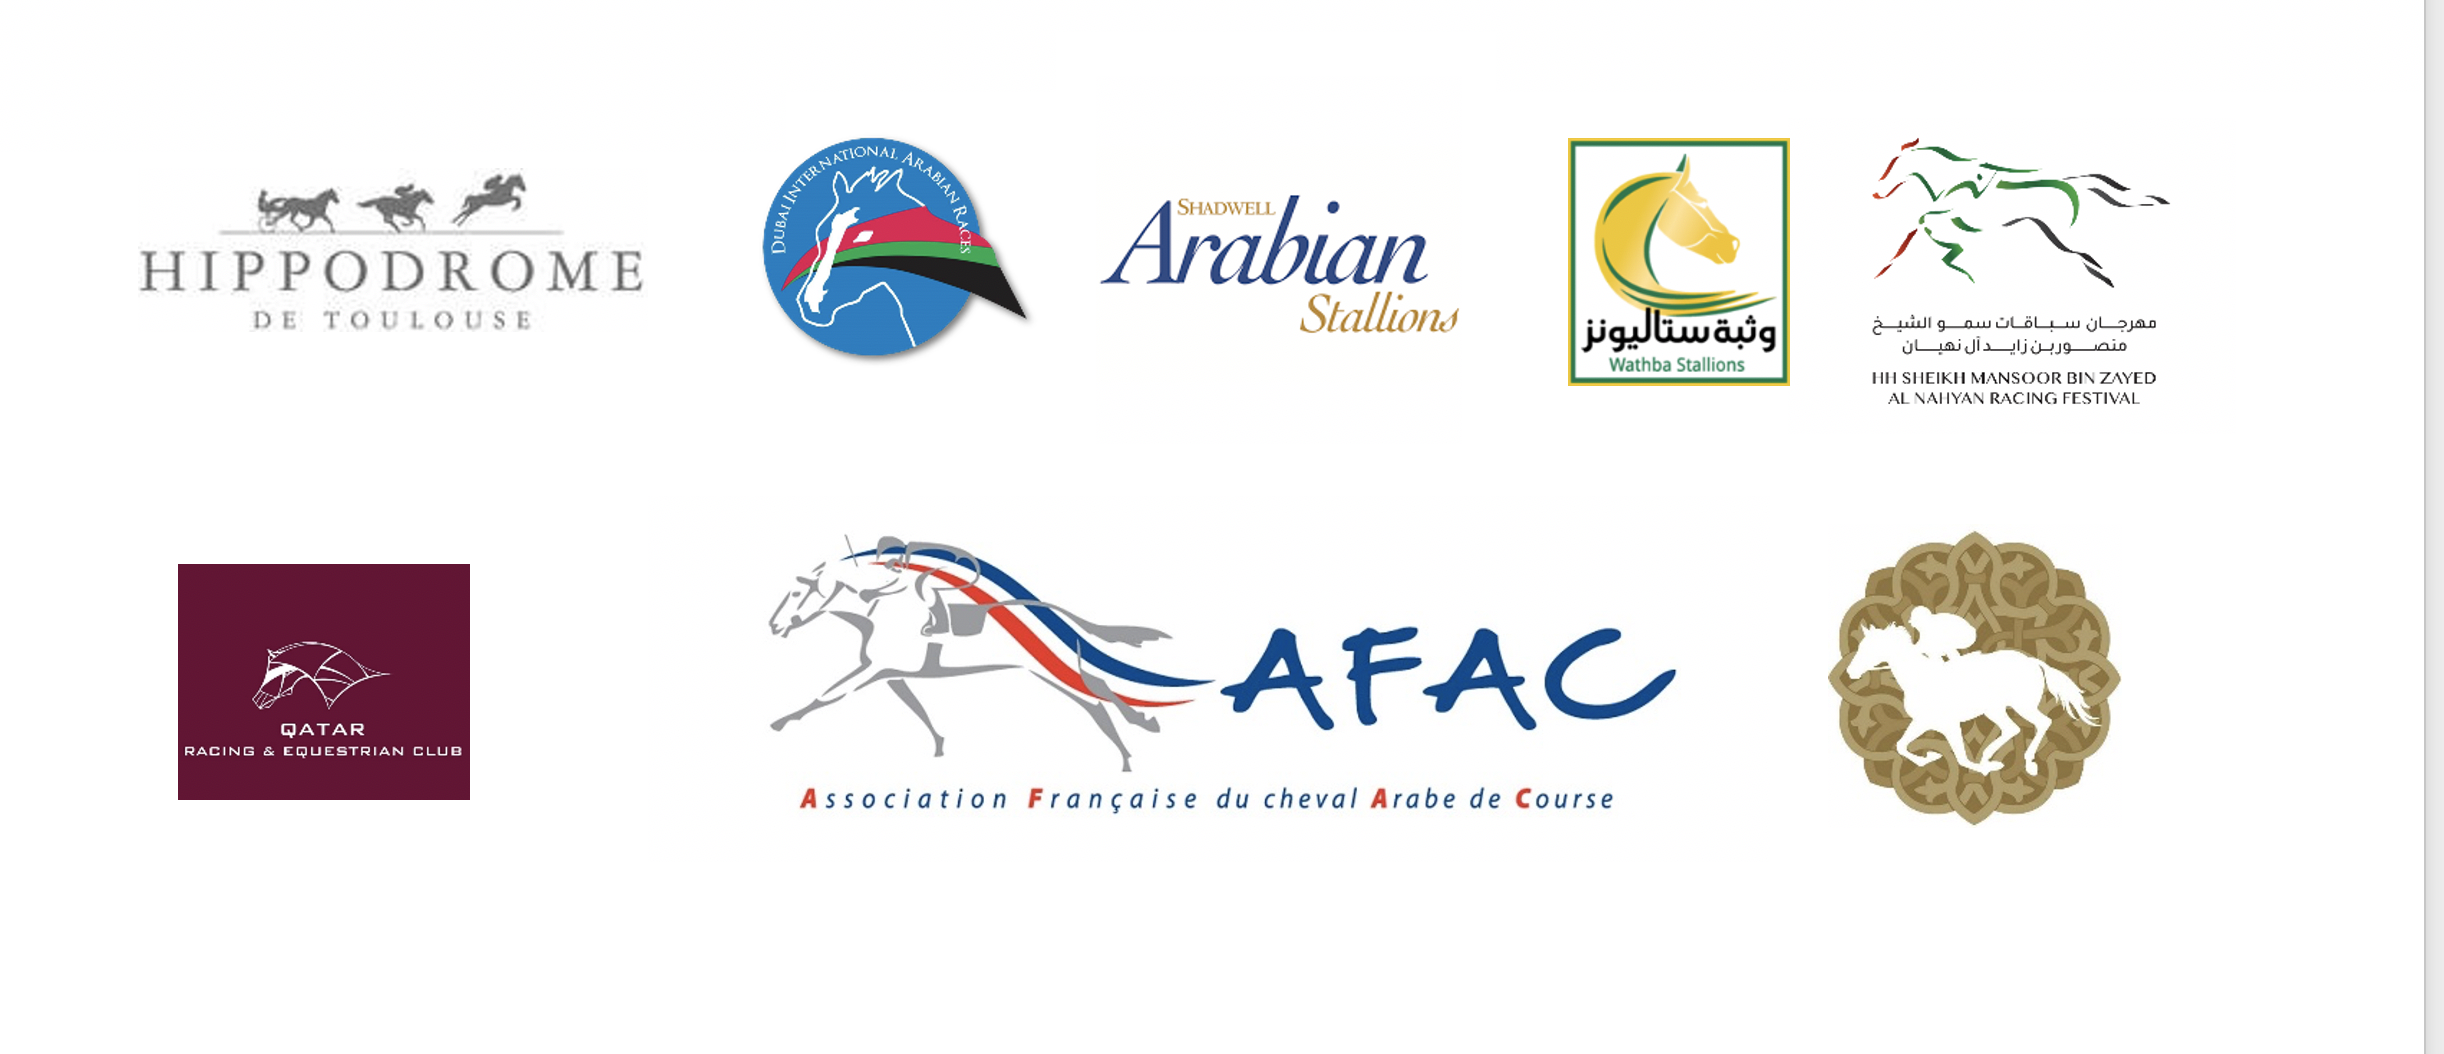 THE WORD OF AFAC:  France continues to remain a very attractive country in terms of prize money and is battening down the hatches in the face of the health crisis